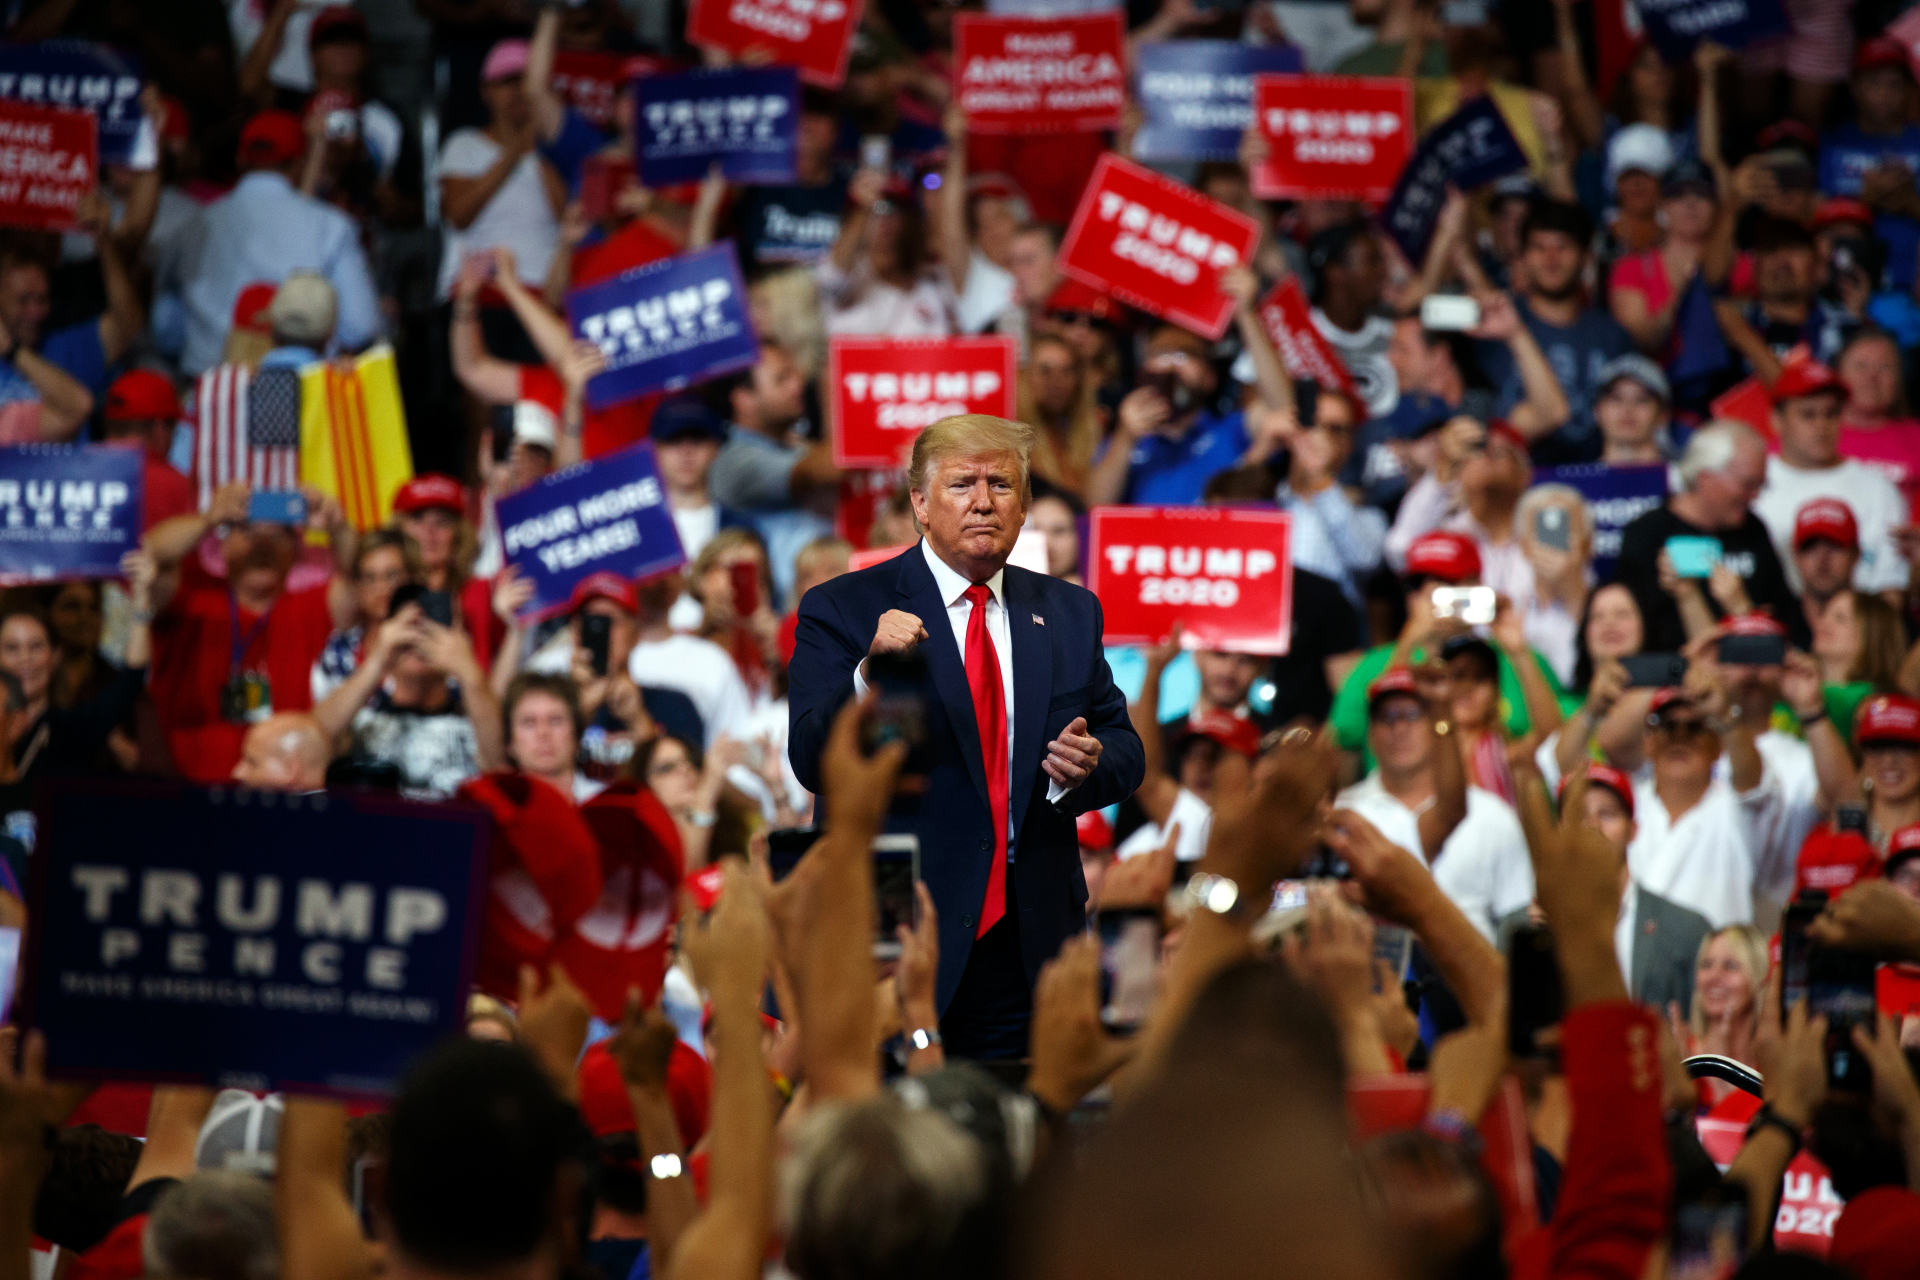 AP FACT CHECK: Trump's boasts, blasts and promises at rally